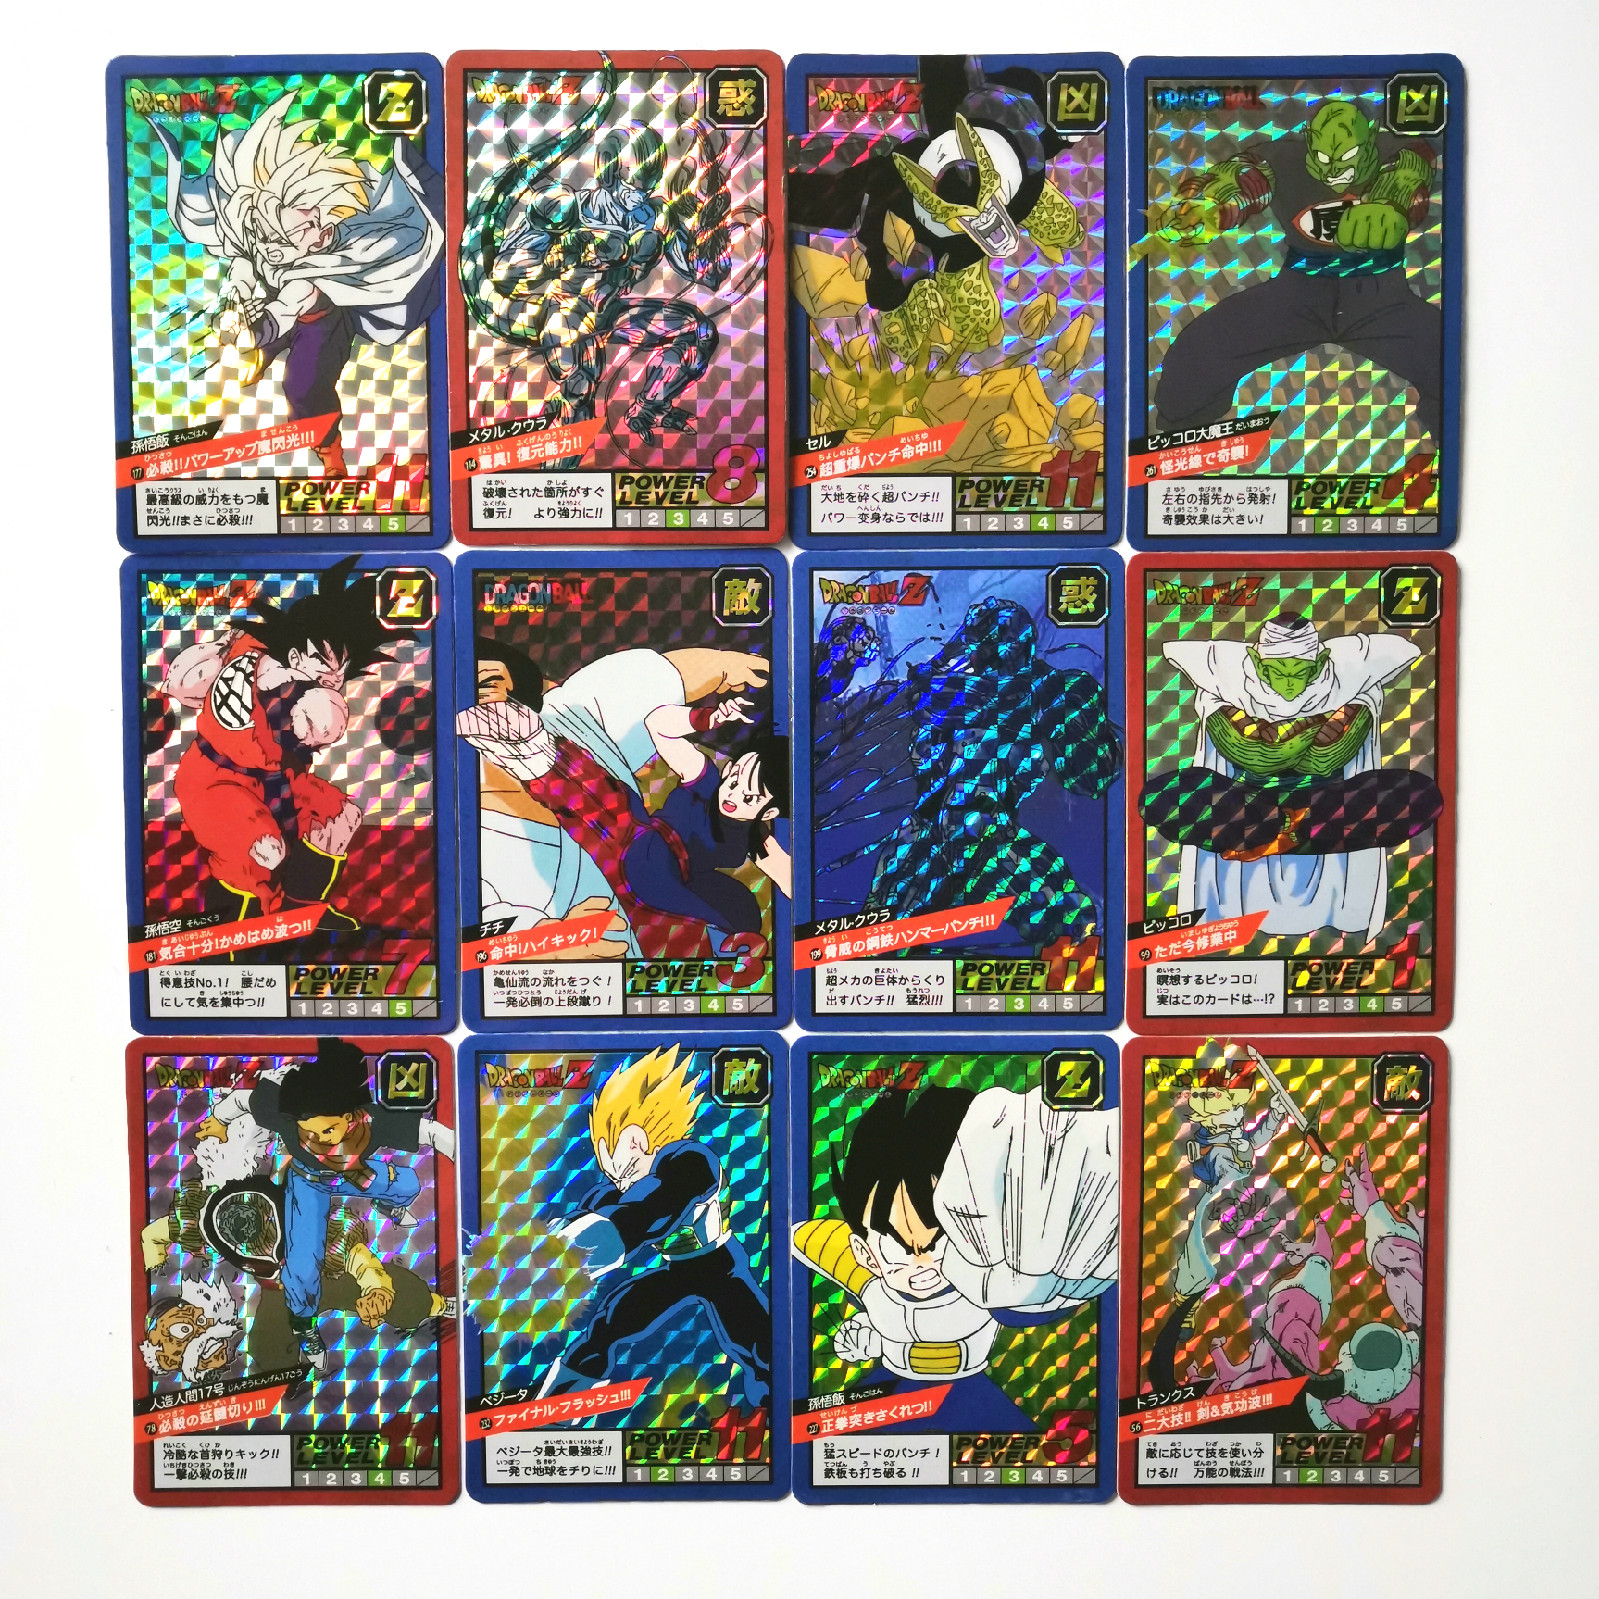 22pcs Super Dragon Ball Z Fighting PP20 Heroes Battle Card Ultra Instinct Goku Vegeta Game Collection Cards